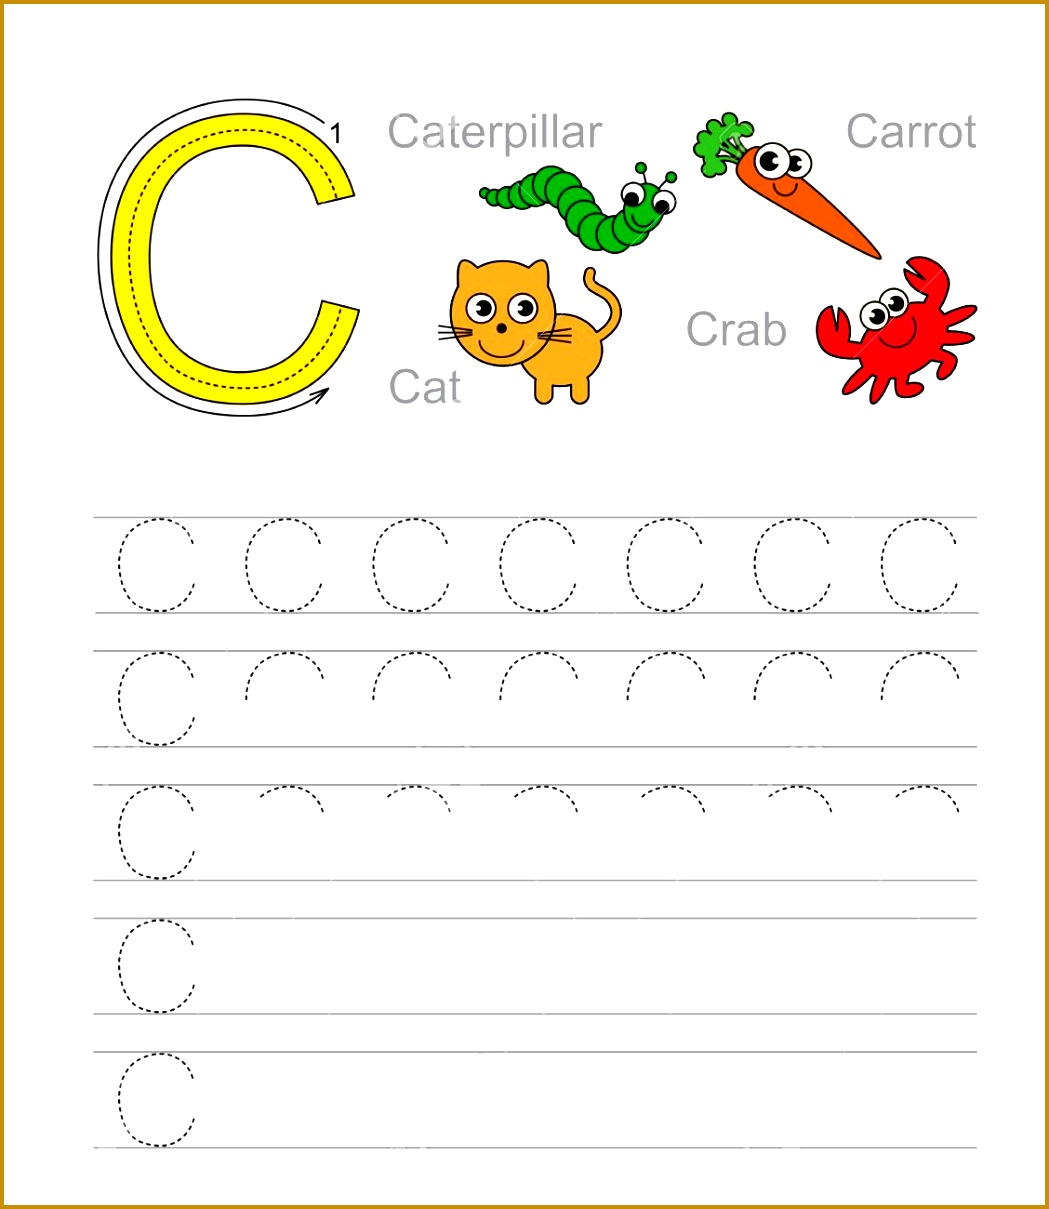 Vector exercise illustrated alphabet Learn handwriting Tracing worksheet for letter C Stock Vector 12091049